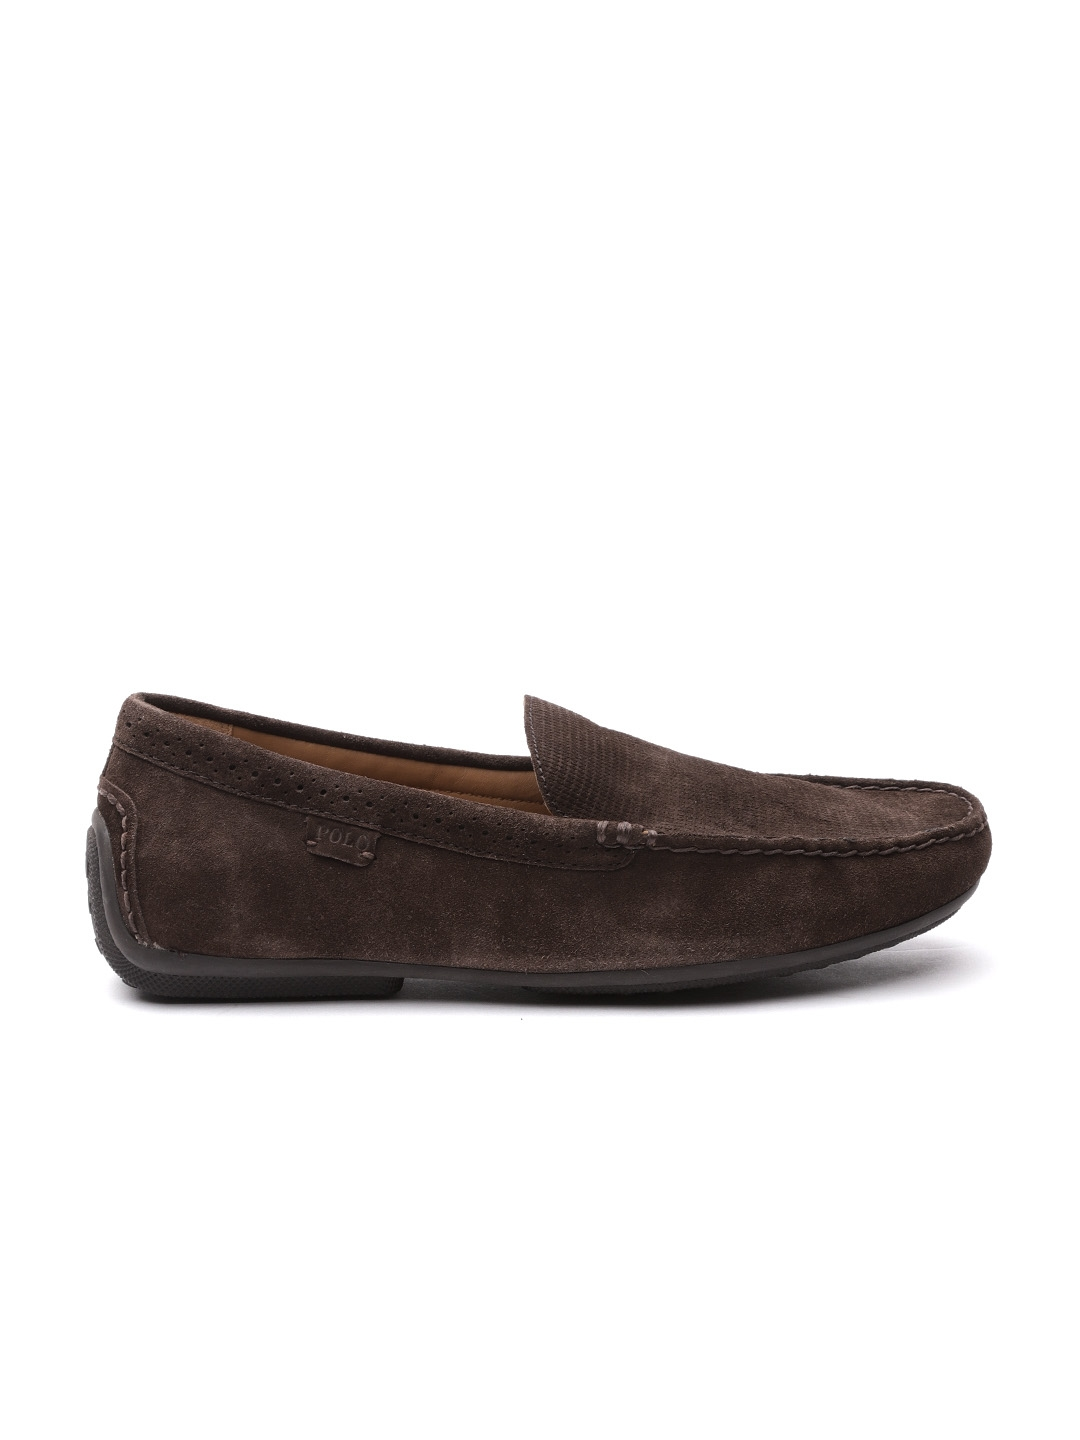 1a25a74c80f Buy Polo Ralph Lauren Men Coffee Brown Suede Driving Shoes - Casual ...